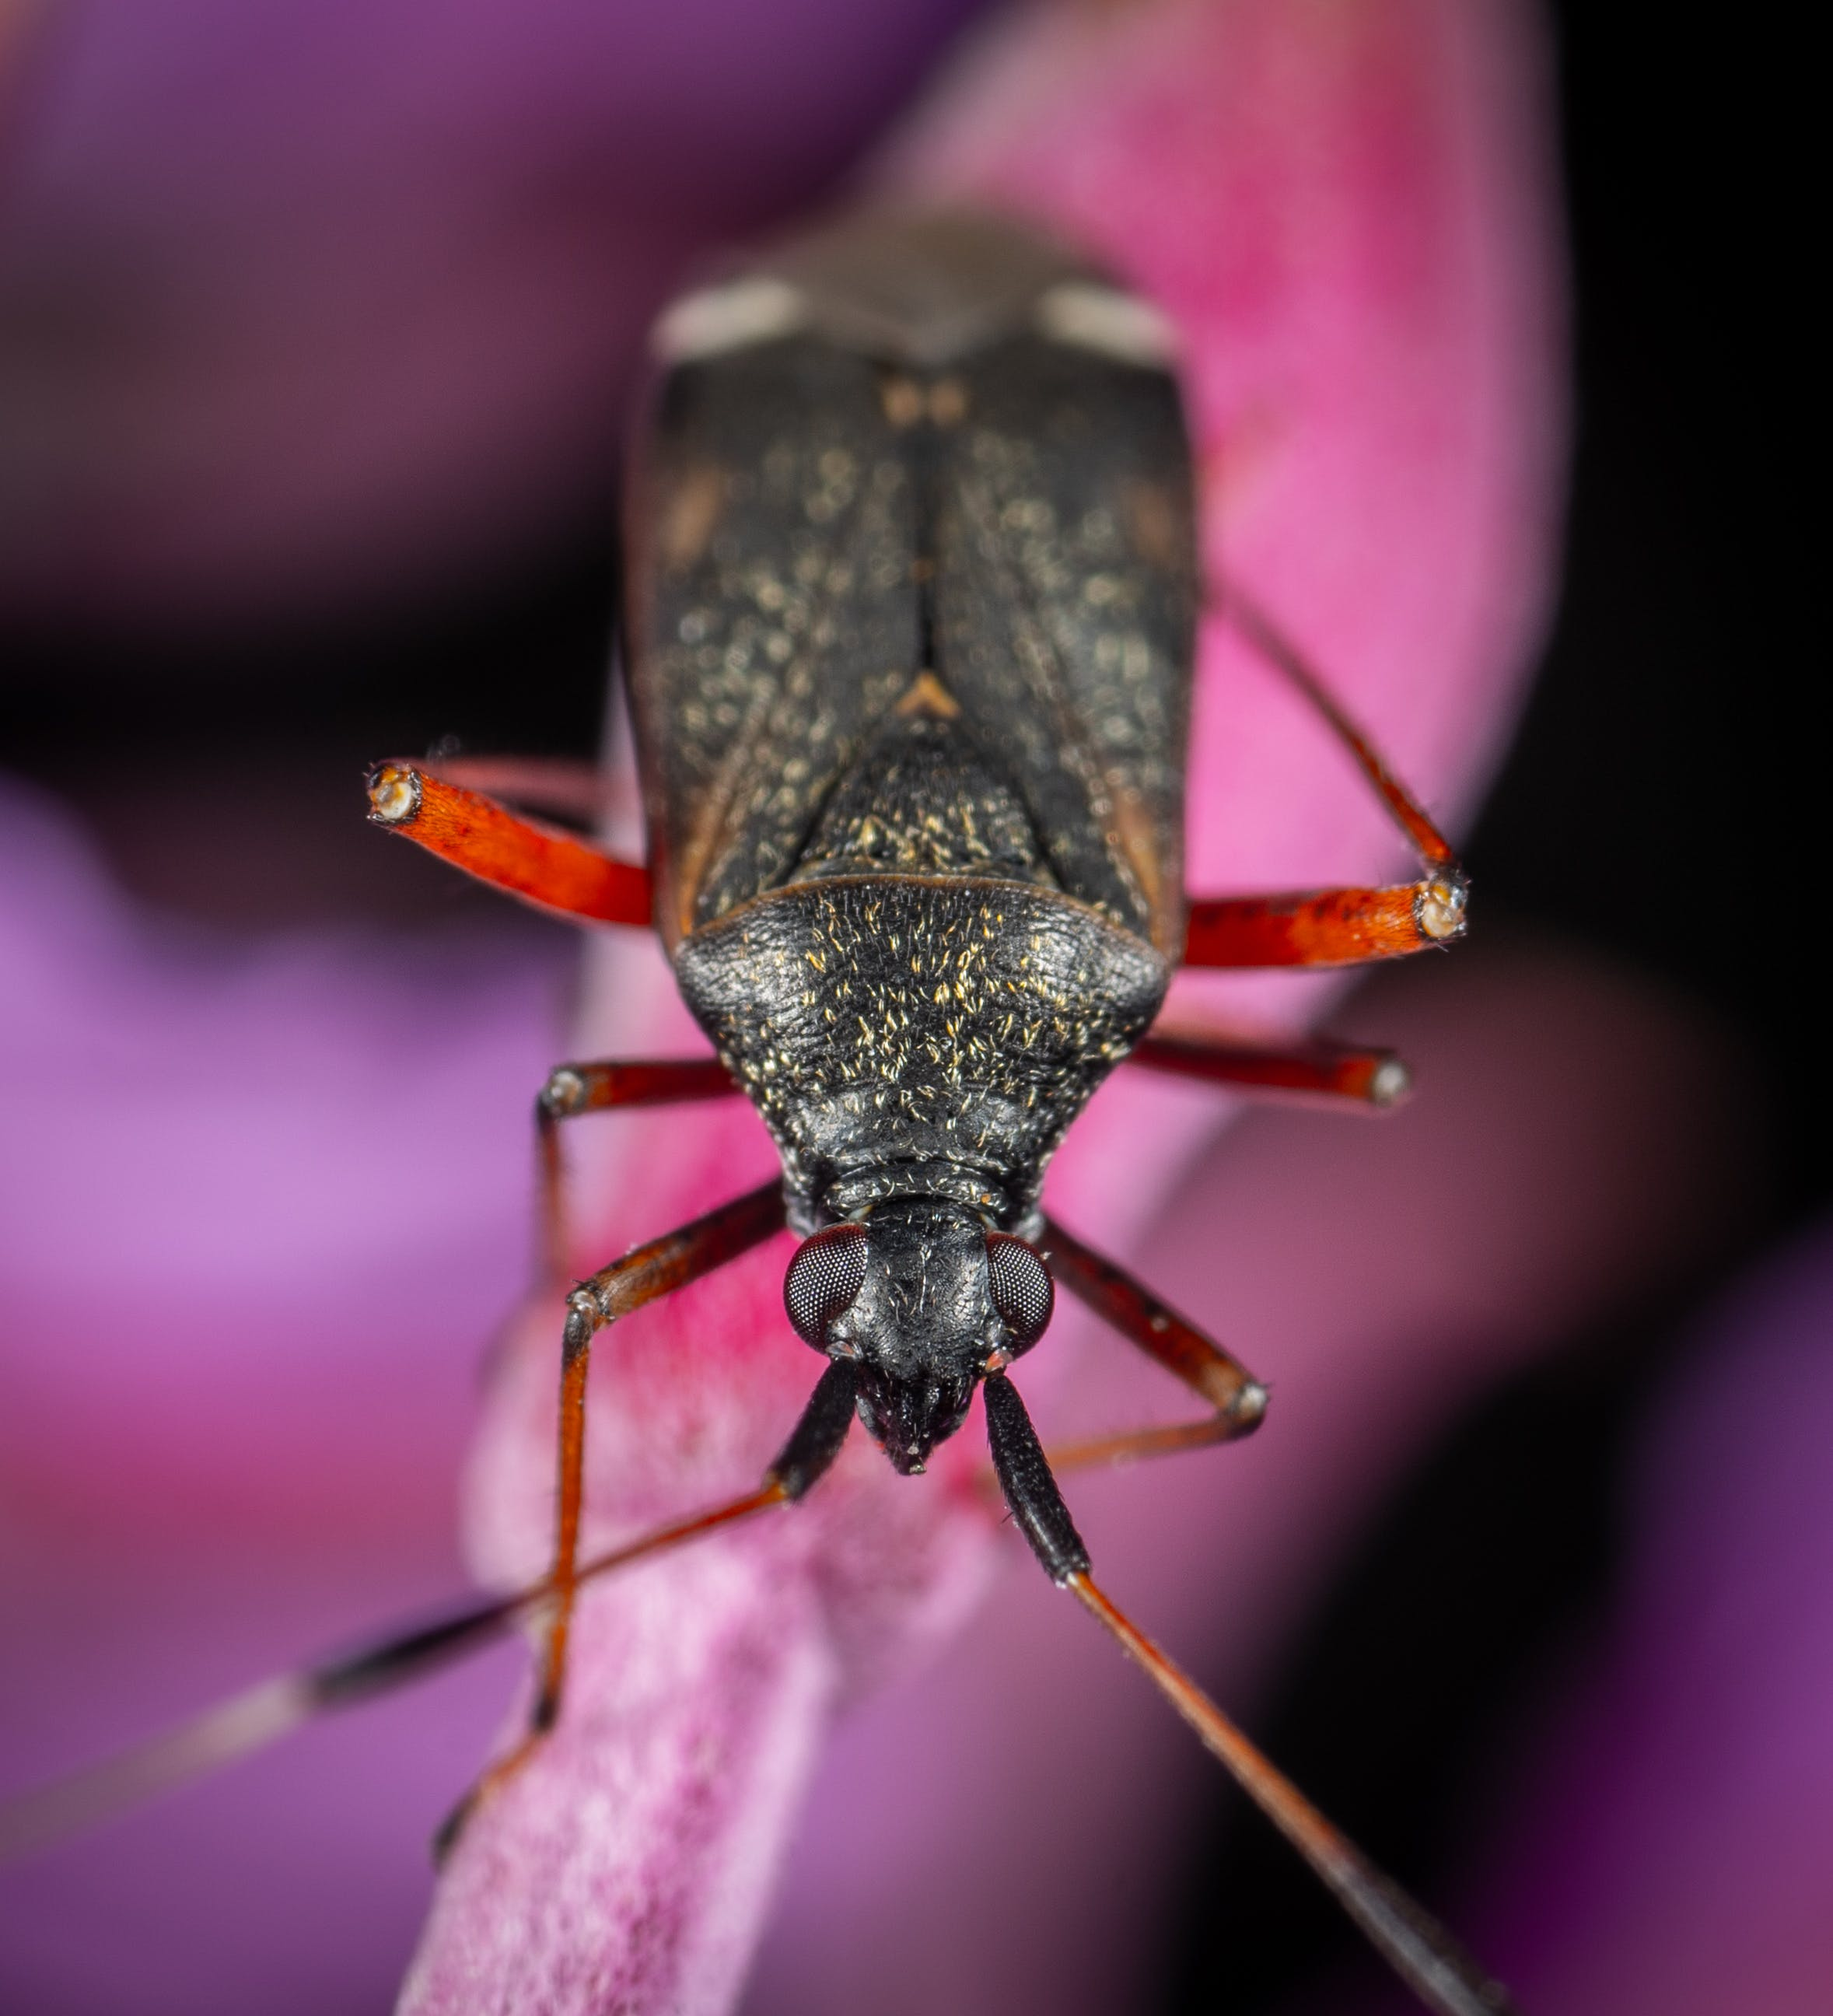 Black Bug in Macro Photography